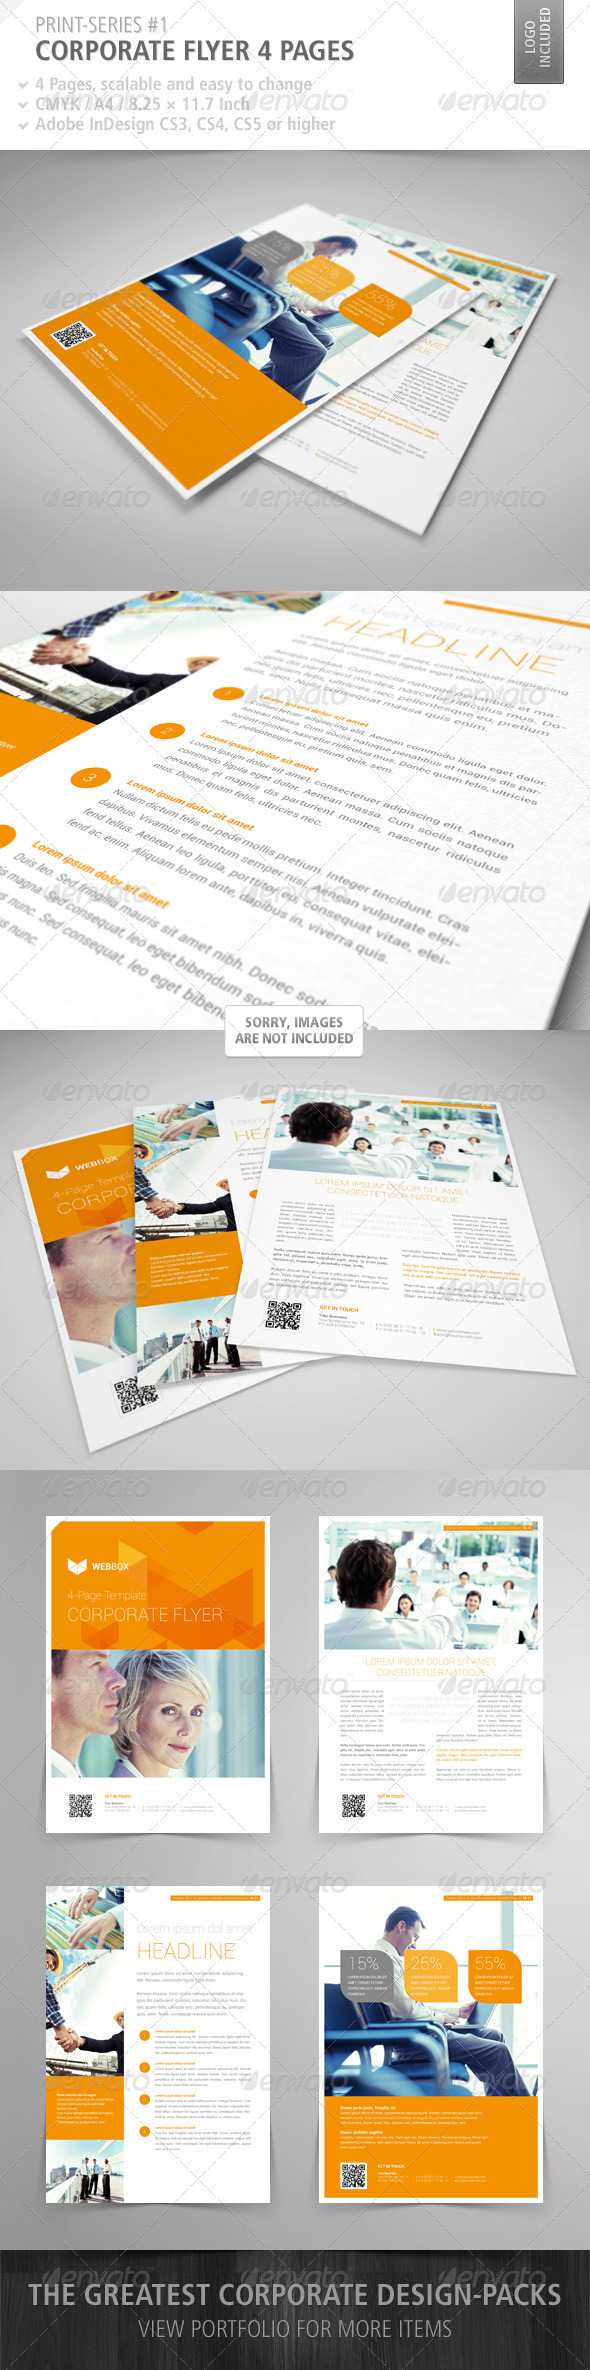 GraphicRiver Corporate Flyer 4 Pages Print-Series #1 3191180